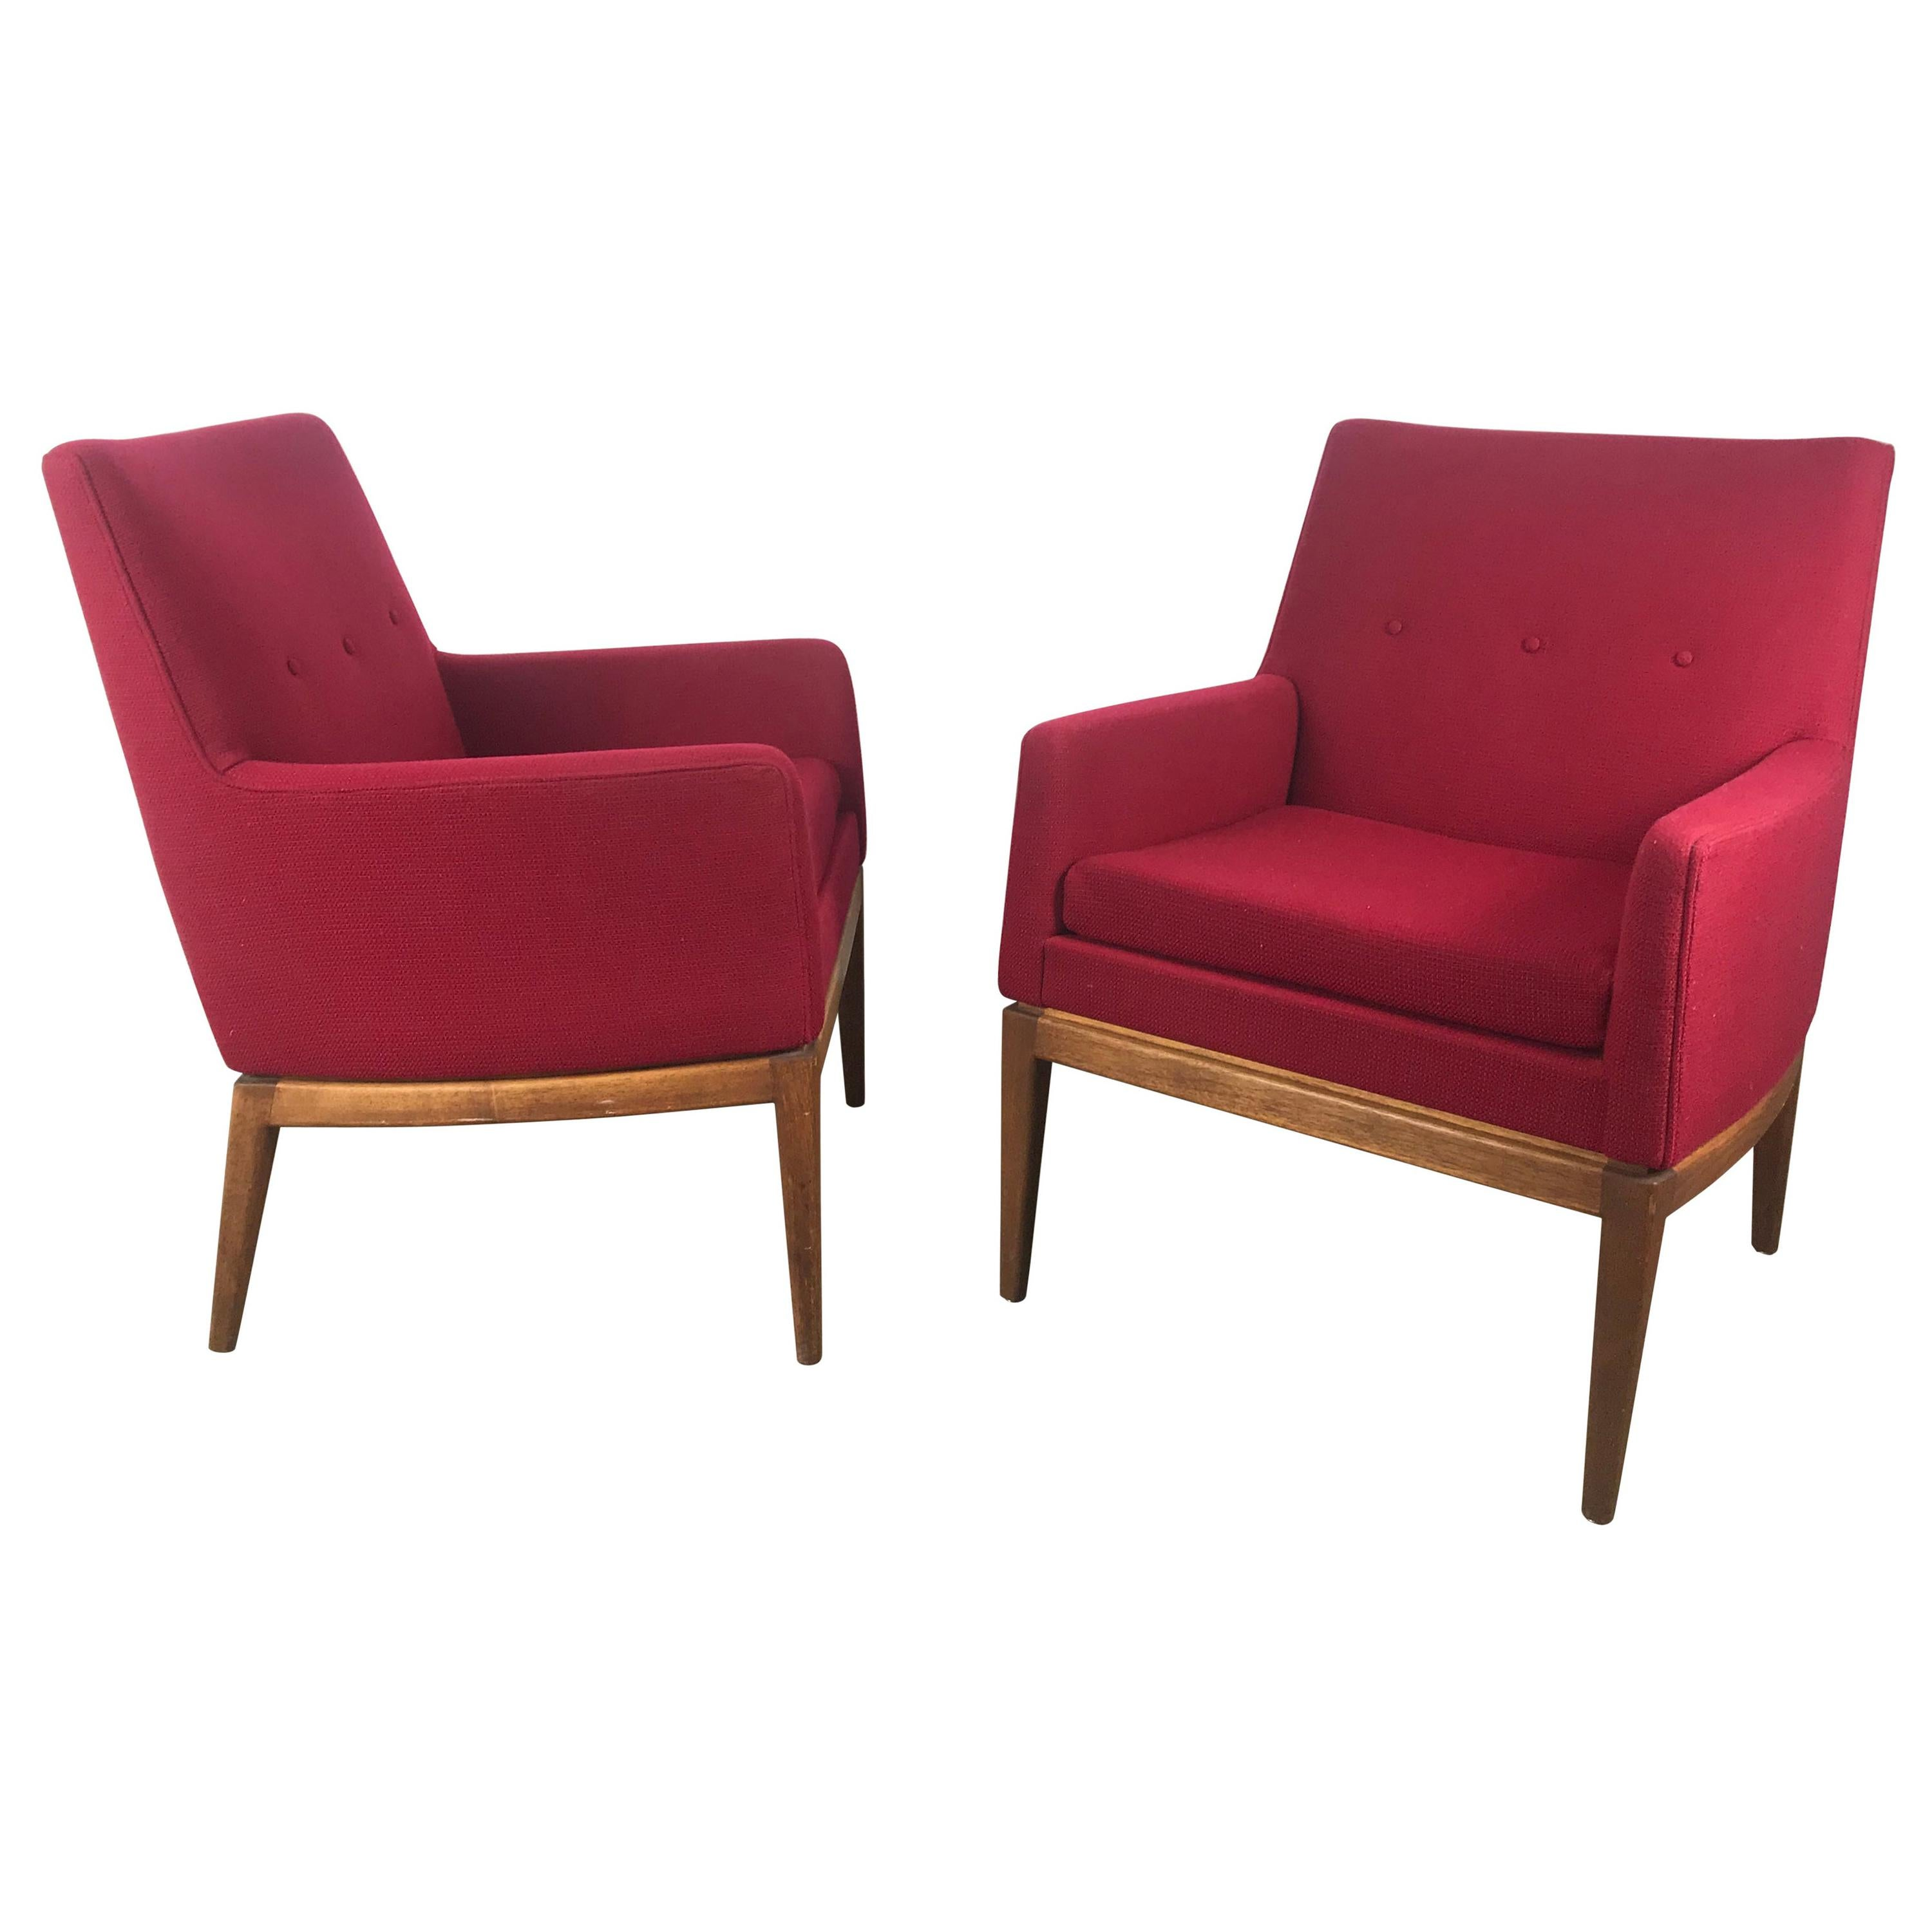 Classic Modernist Lounge Chairs Designed by Jens Risom, Jens Risom Design Inc